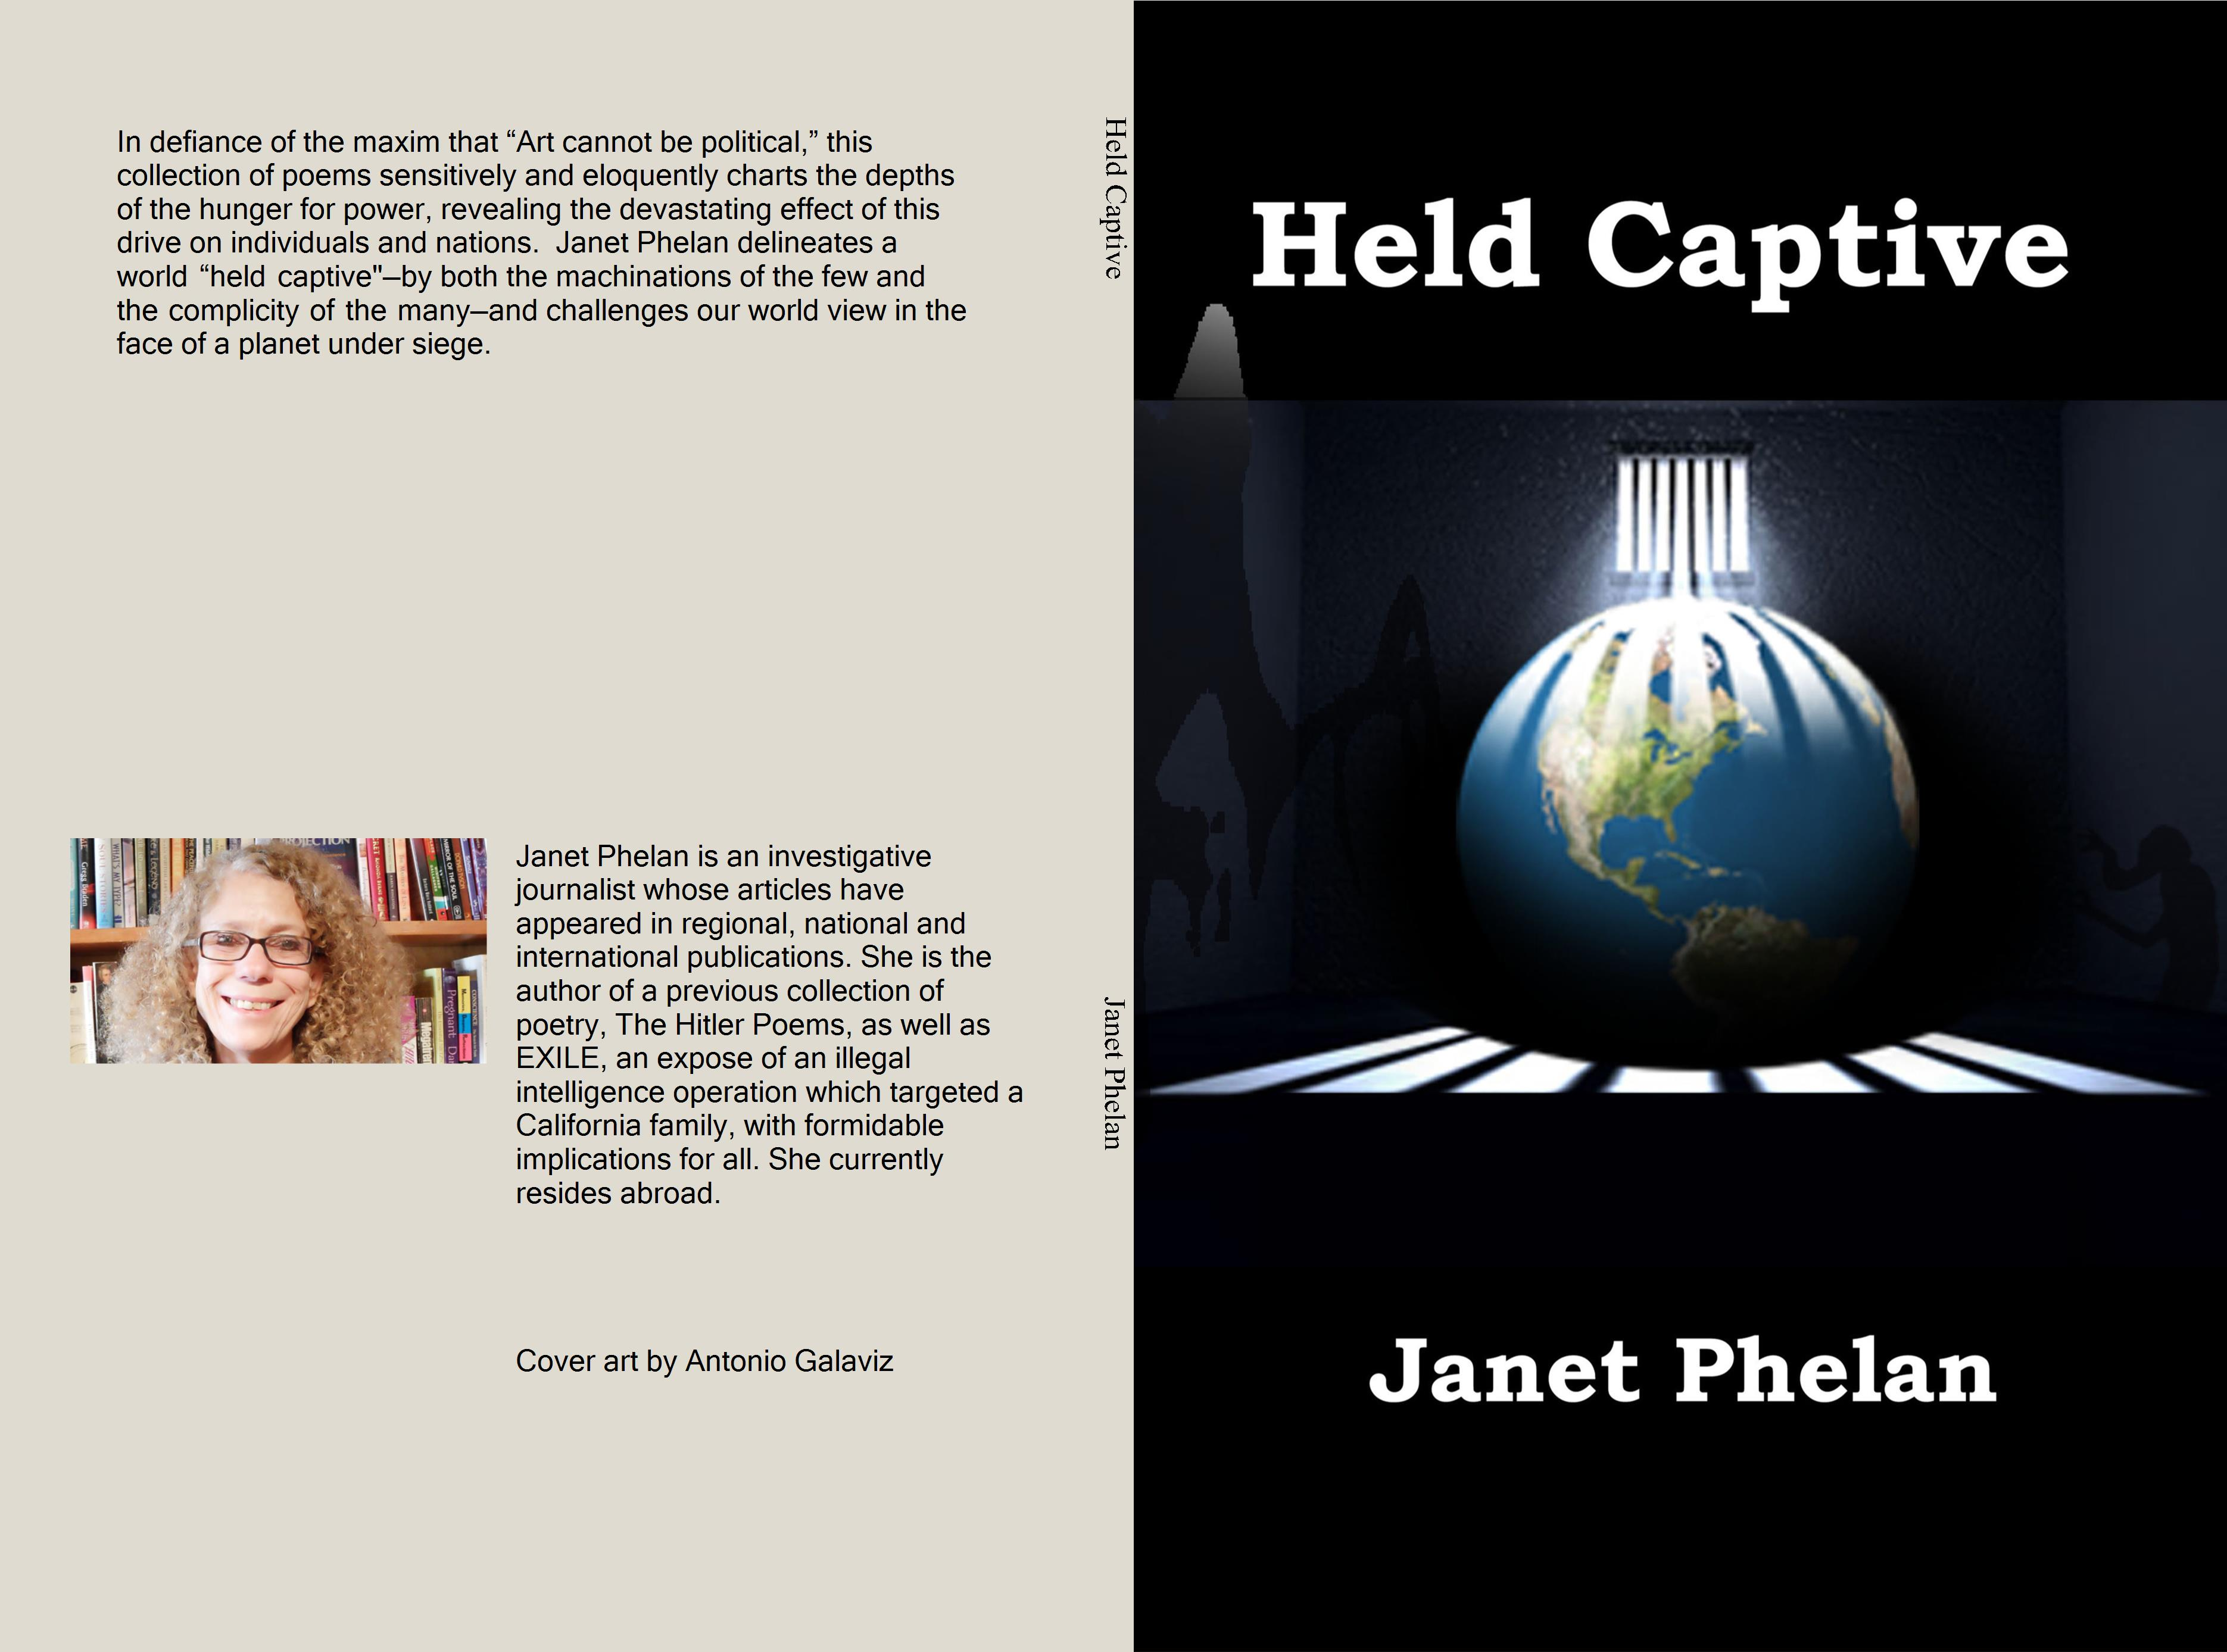 Held Captive cover image